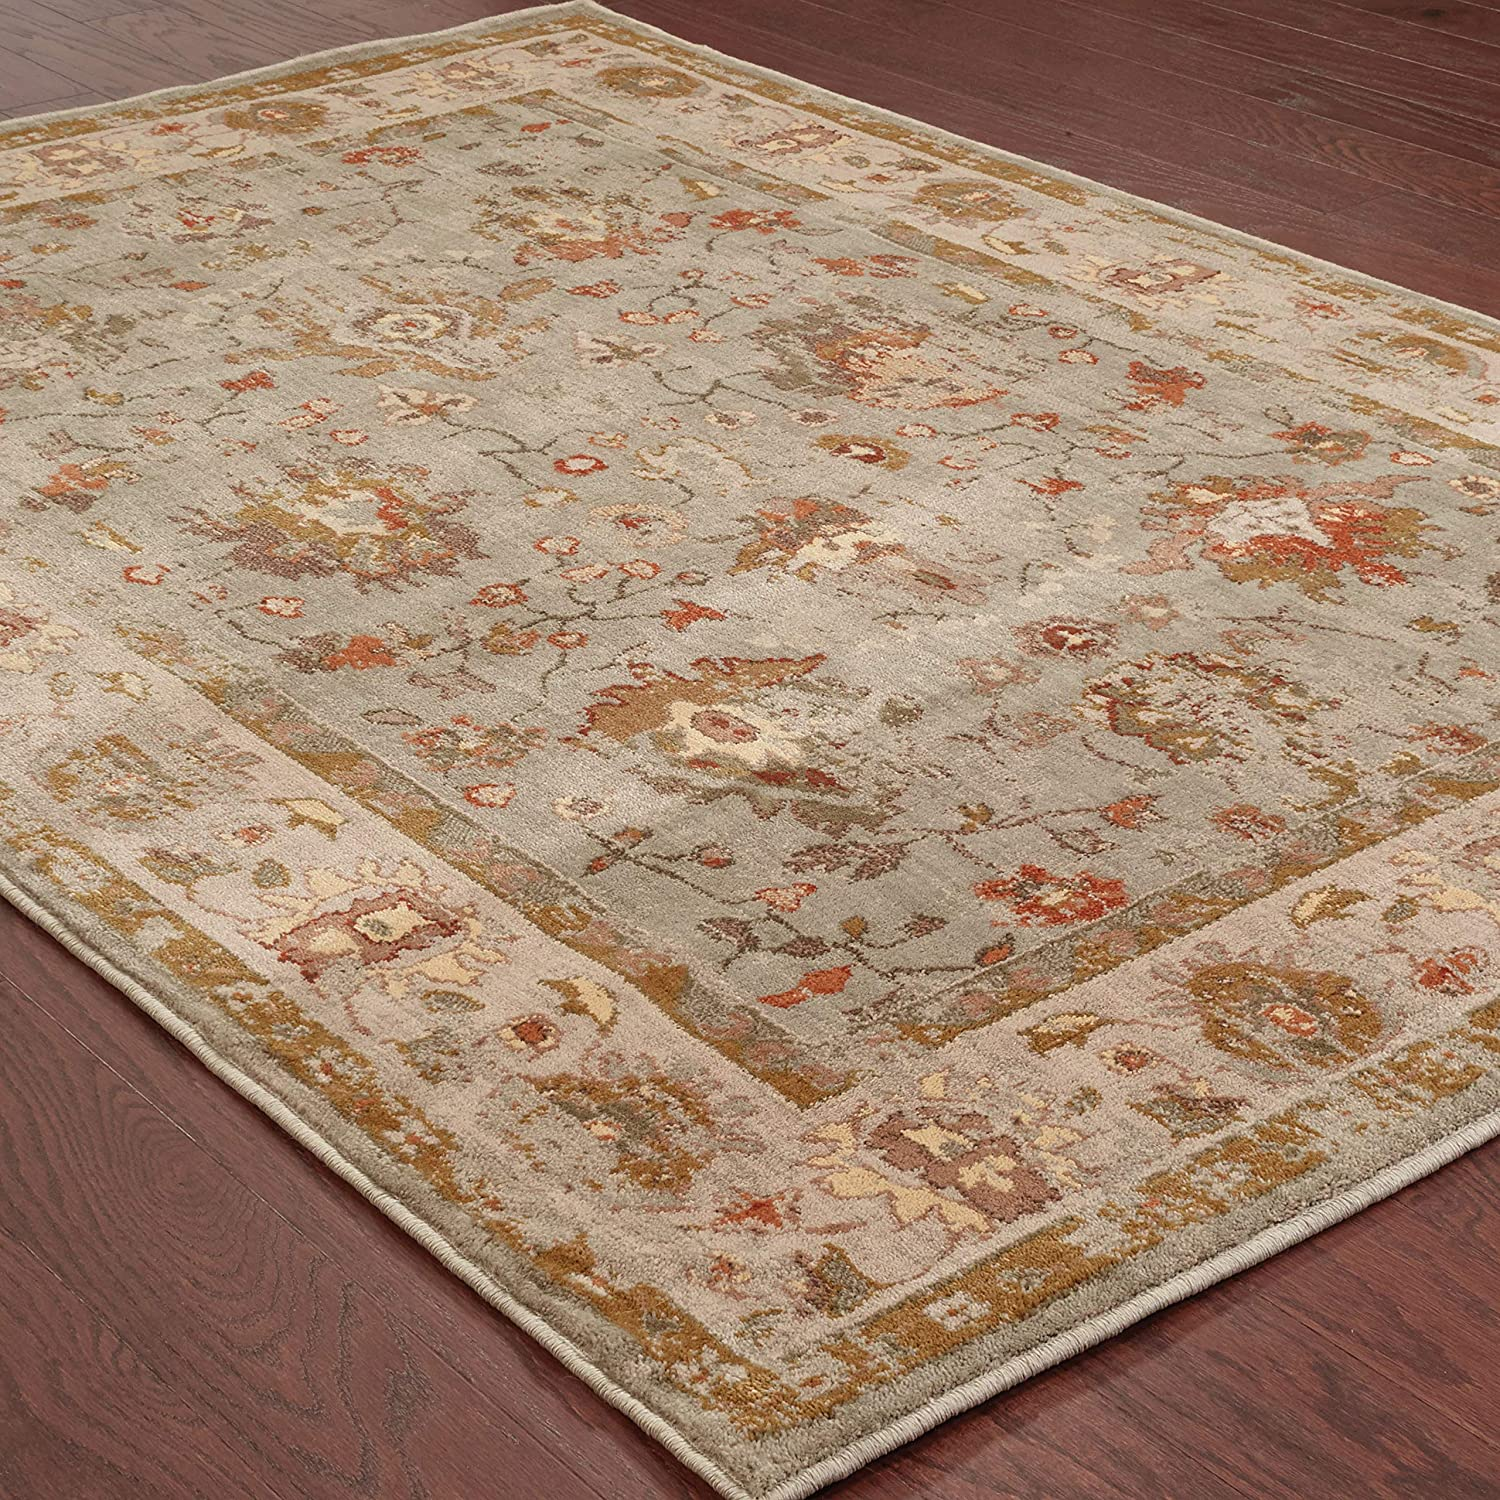 Christopher Knight Home CK-C6444 Cadence Oriental Border Indoor Area Rug 7ft 10in X 10ft 10in Blue,Grey